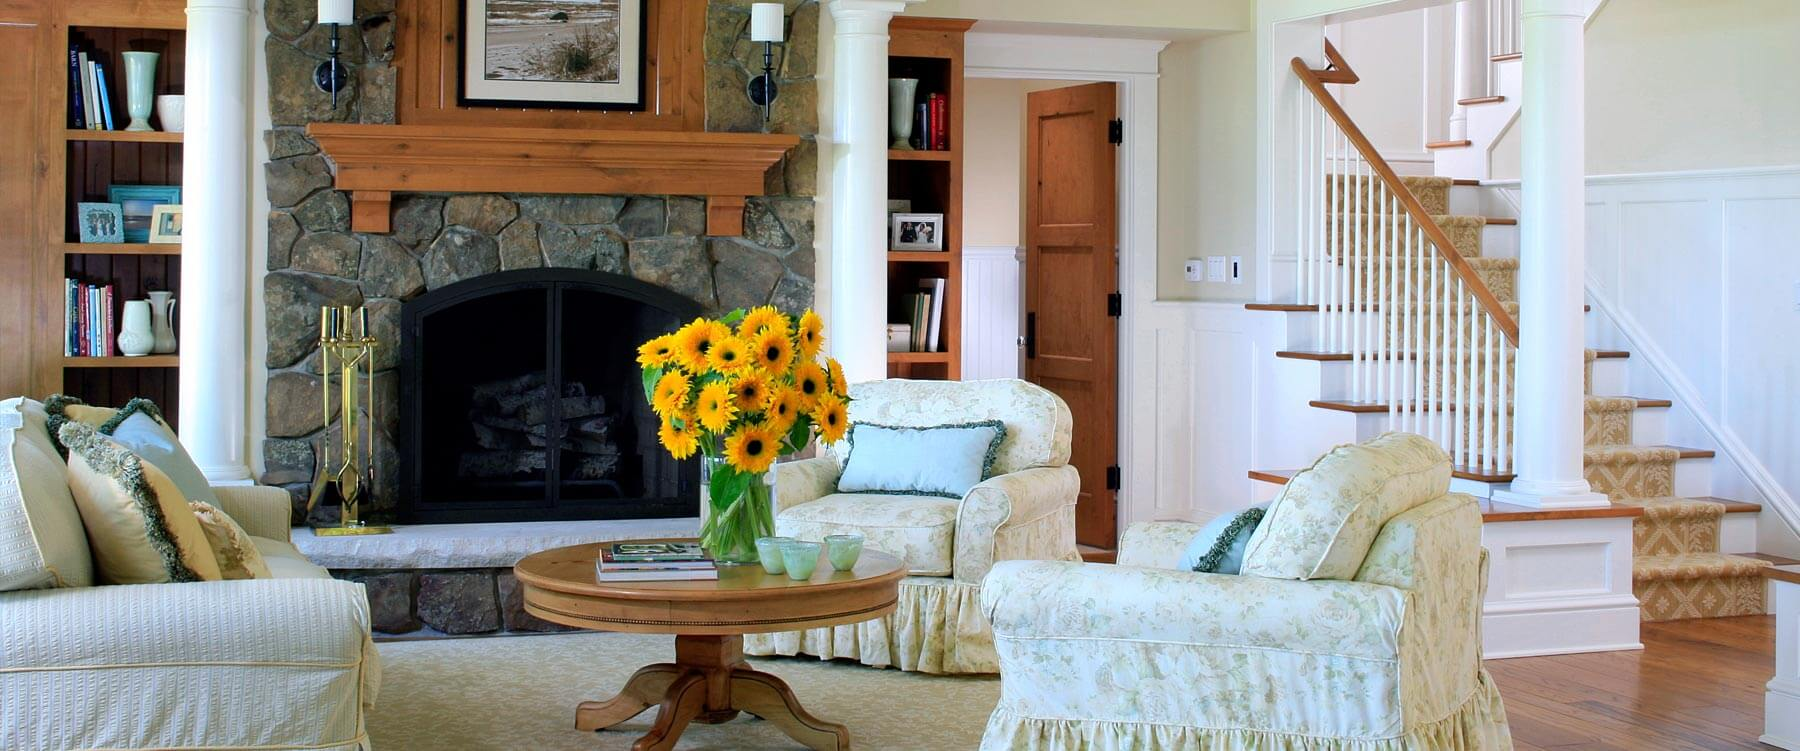 Shingle Cottage - Interior - Living Area